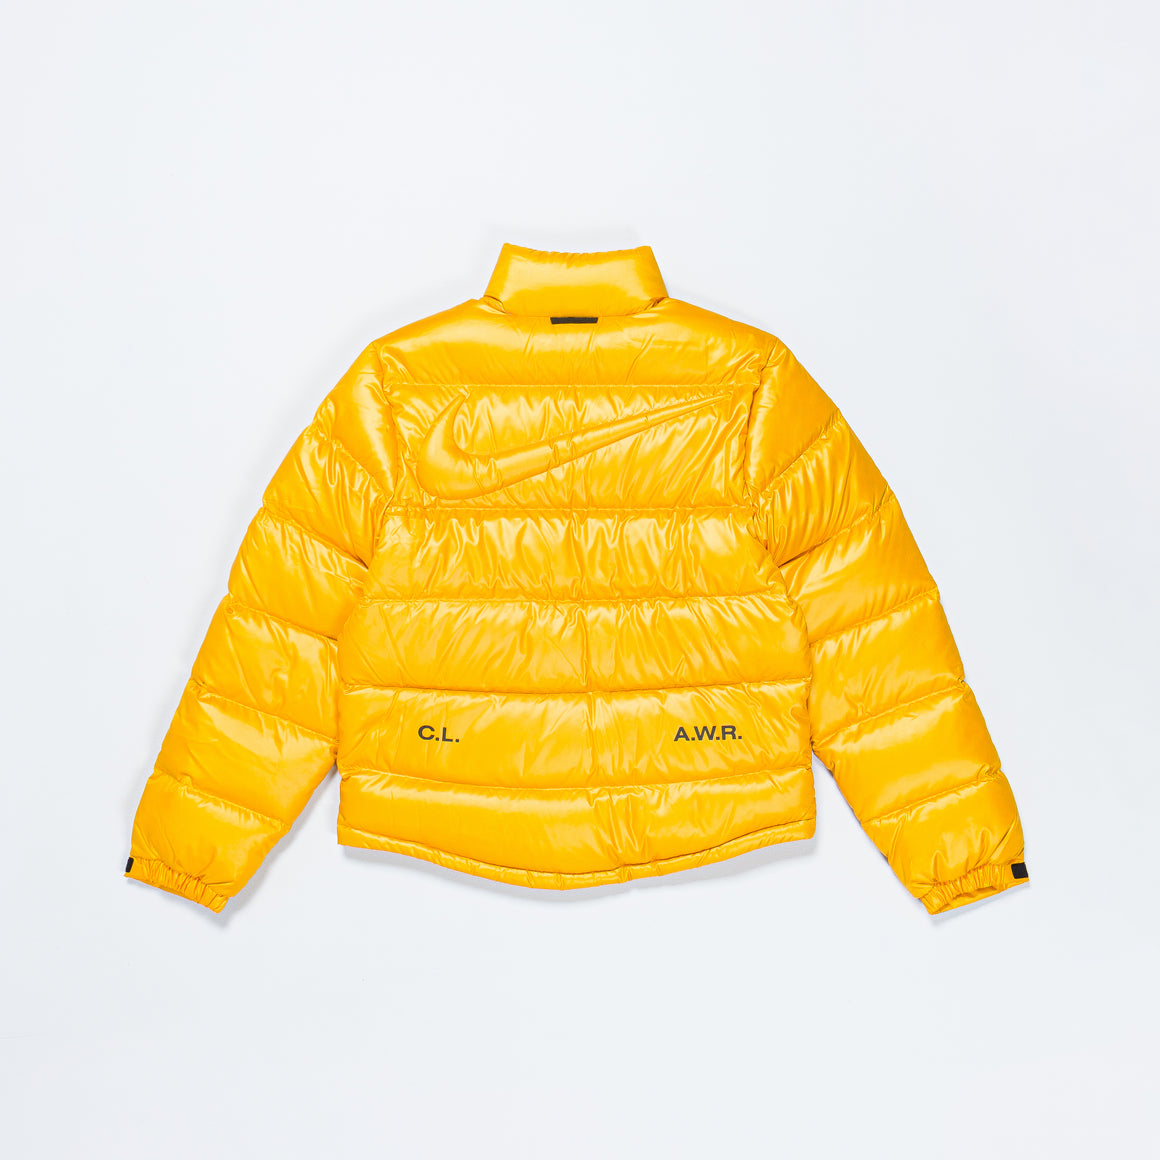 Nike - Nocta NRG Essentials Puffer Jacket - University Gold - Up There